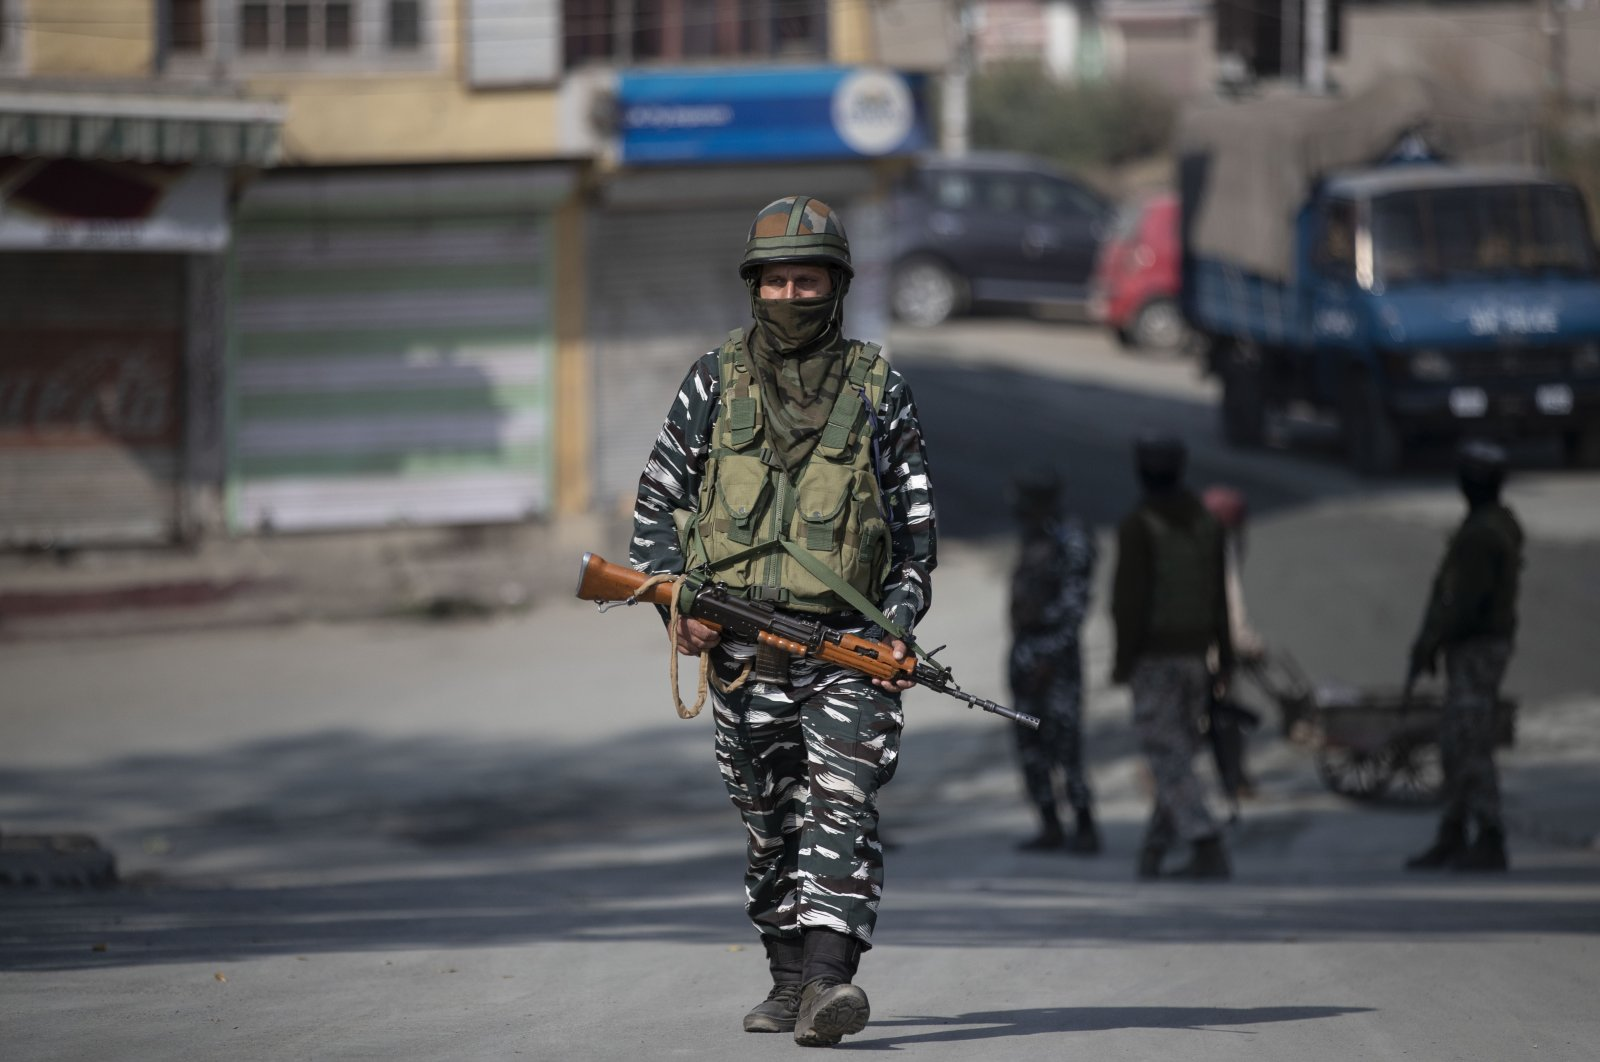 An Indian paramilitary soldier patrols during a gunfight between government forces and suspected rebels, Srinagar, Oct. 12, 2020. (AP Photo)